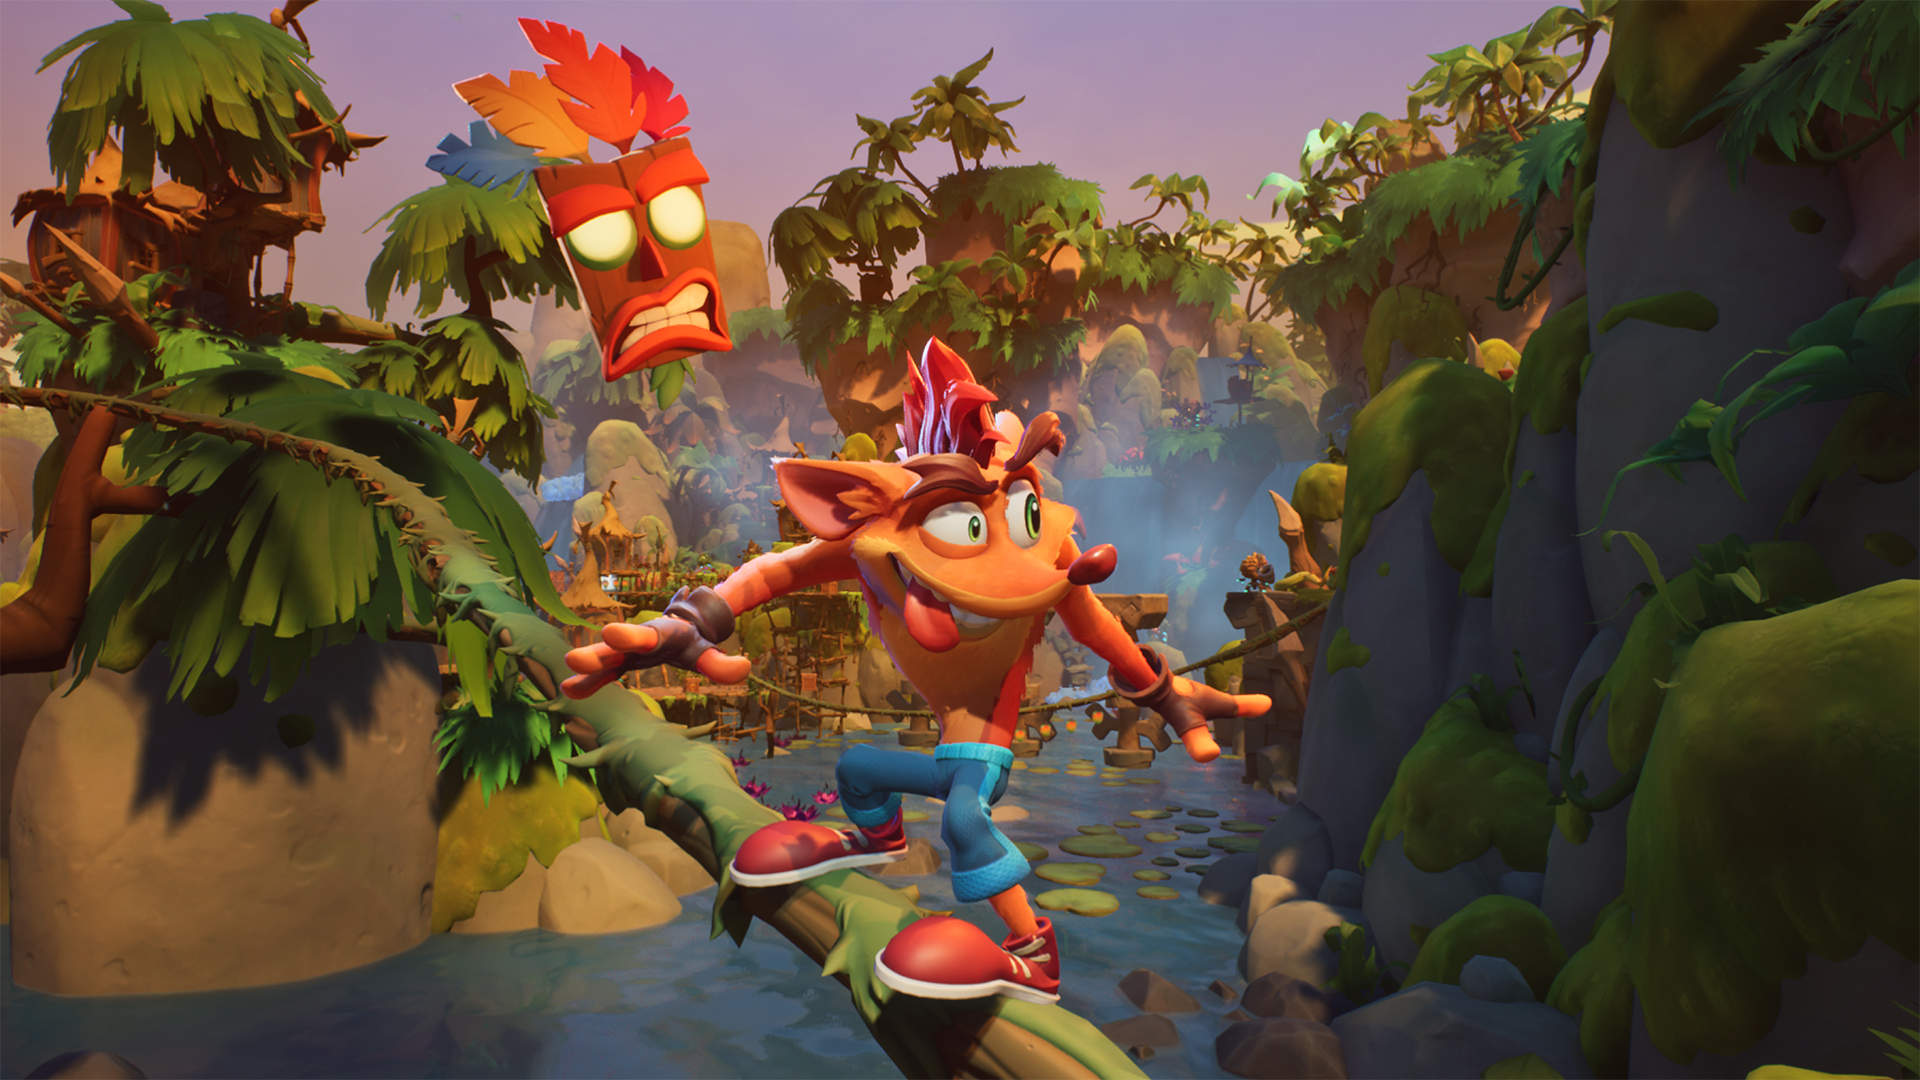 https://www.pdvg.it/wp-content/uploads/2020/06/crash-bandicoot-4-its-about-time-pdvg.jpg